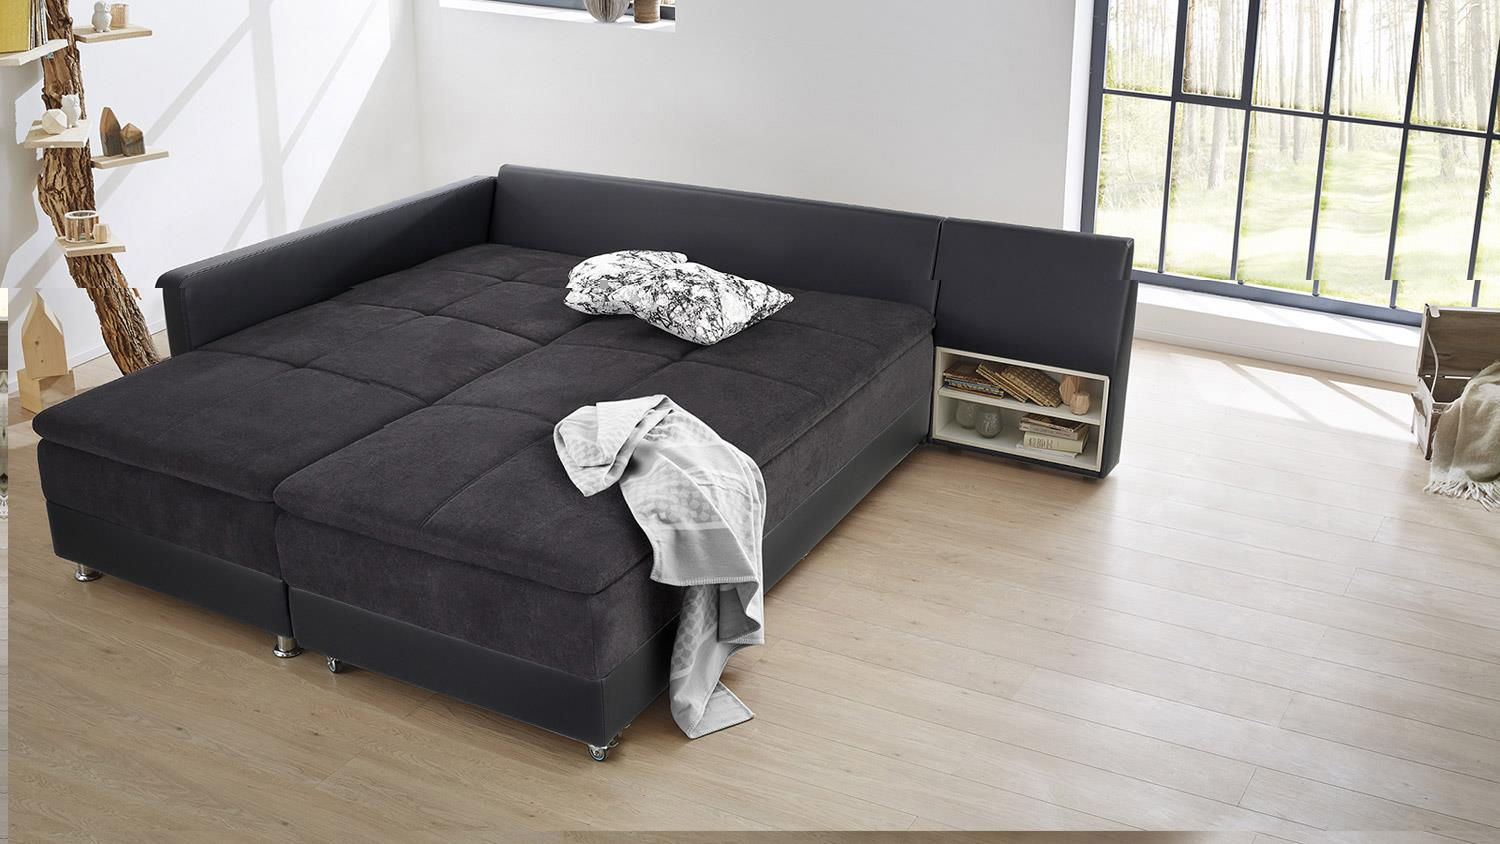 Bett Couch Sofa Und Bett In Einem Fabulous Amazing Excellent Xxl